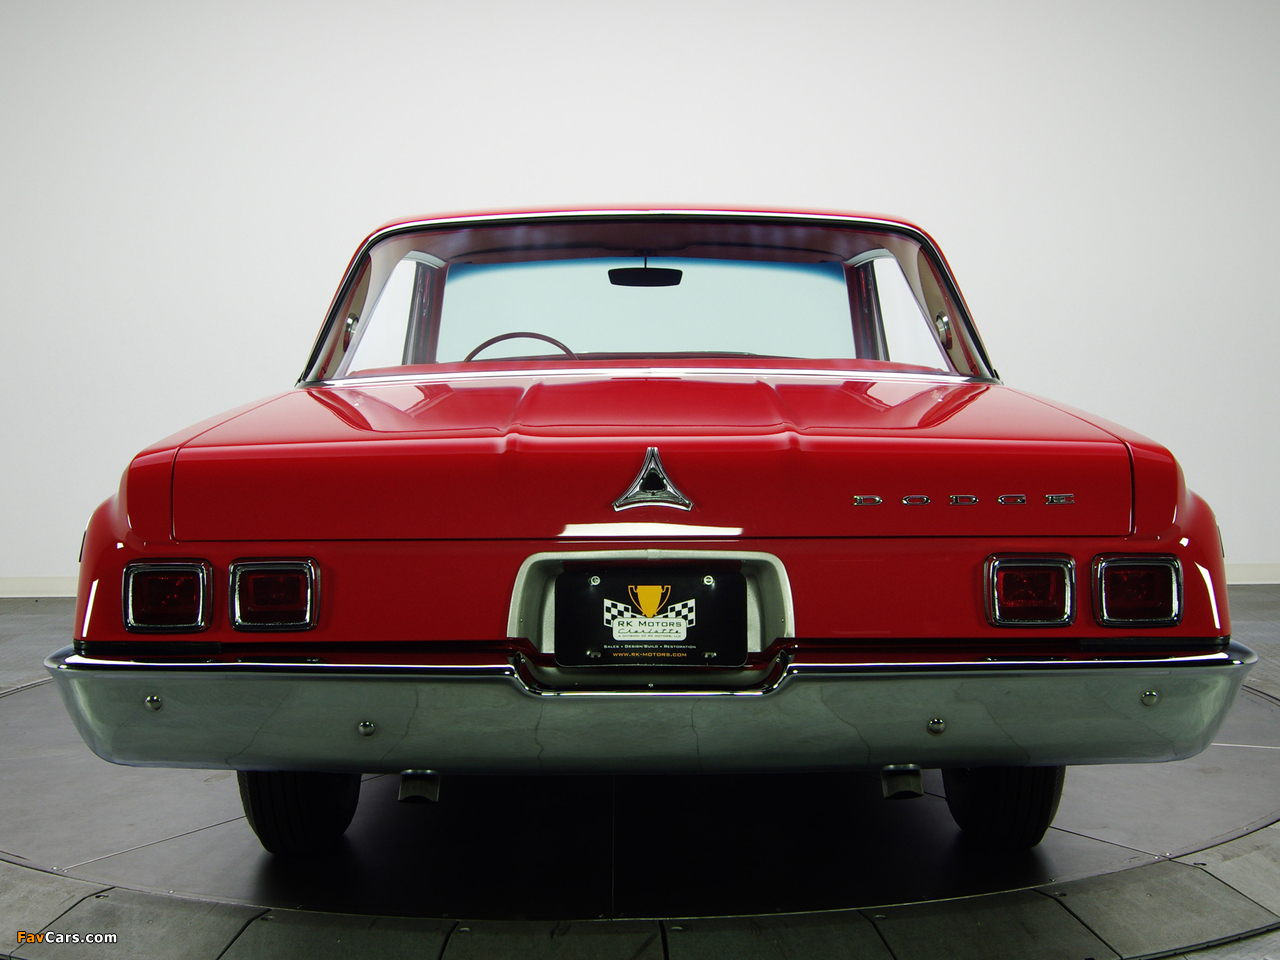 Images of Dodge 440 Street Wedge (622) 1964 (1280 x 960)